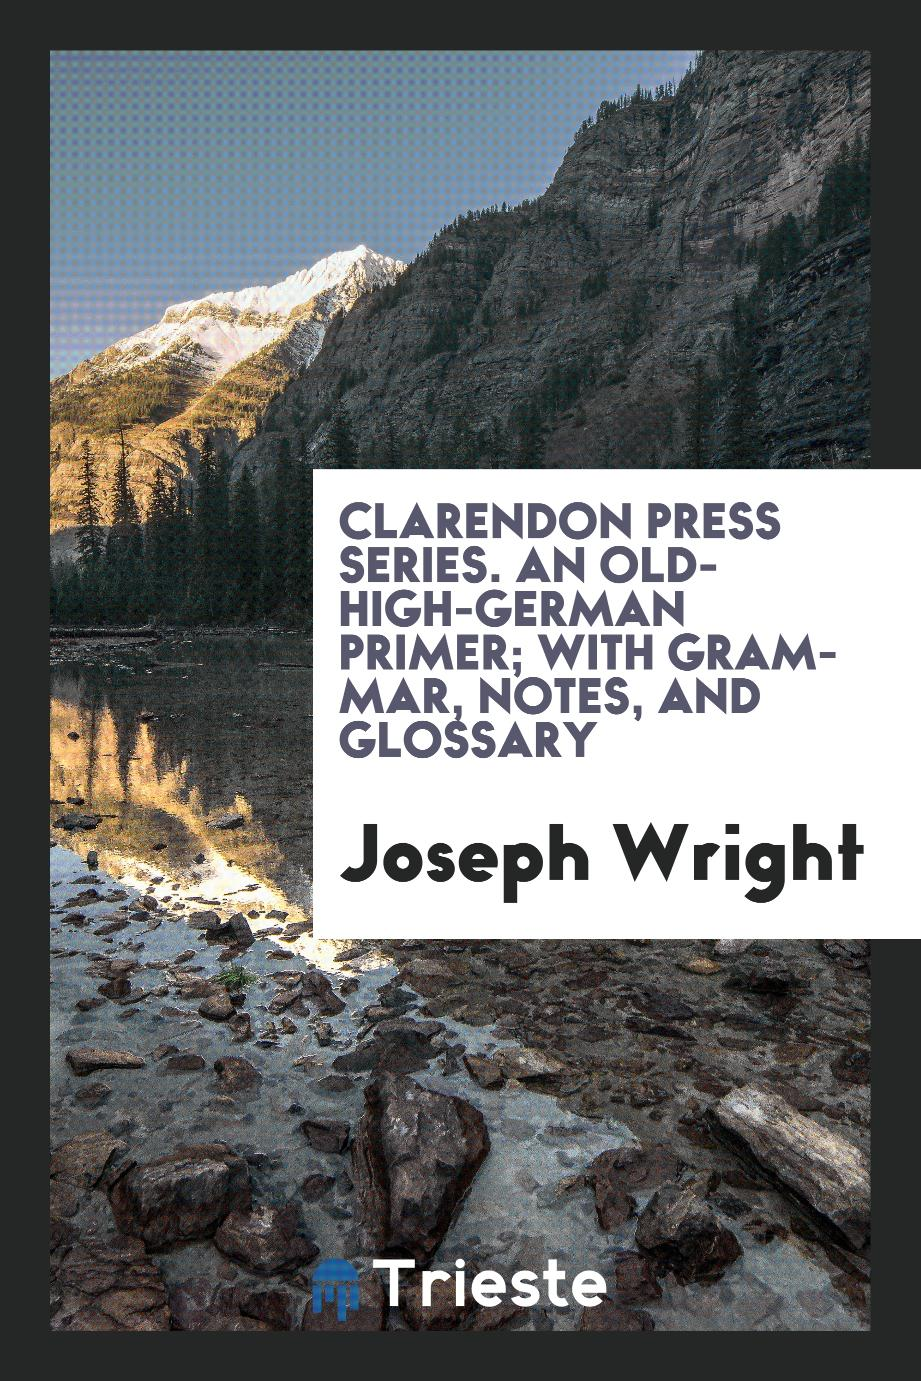 Clarendon press series. An Old-High-German primer; with grammar, notes, and glossary